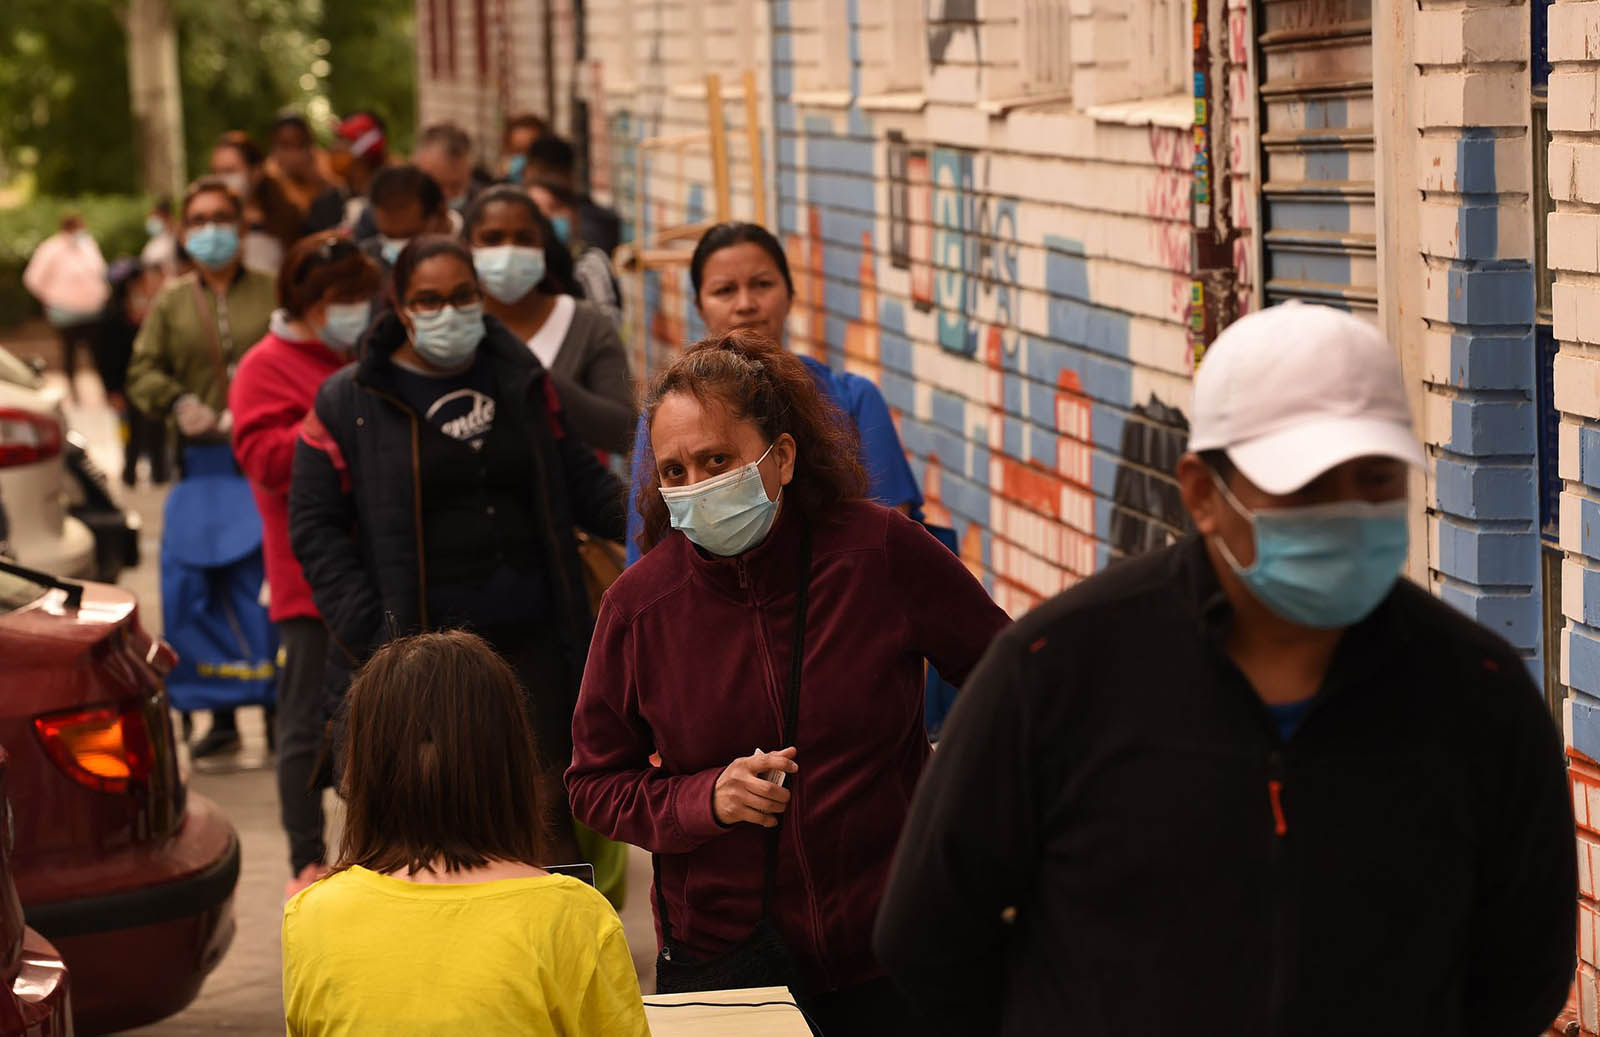 Spain Allows Some Businesses To Reopen As It Eases Coronavirus Lockdown